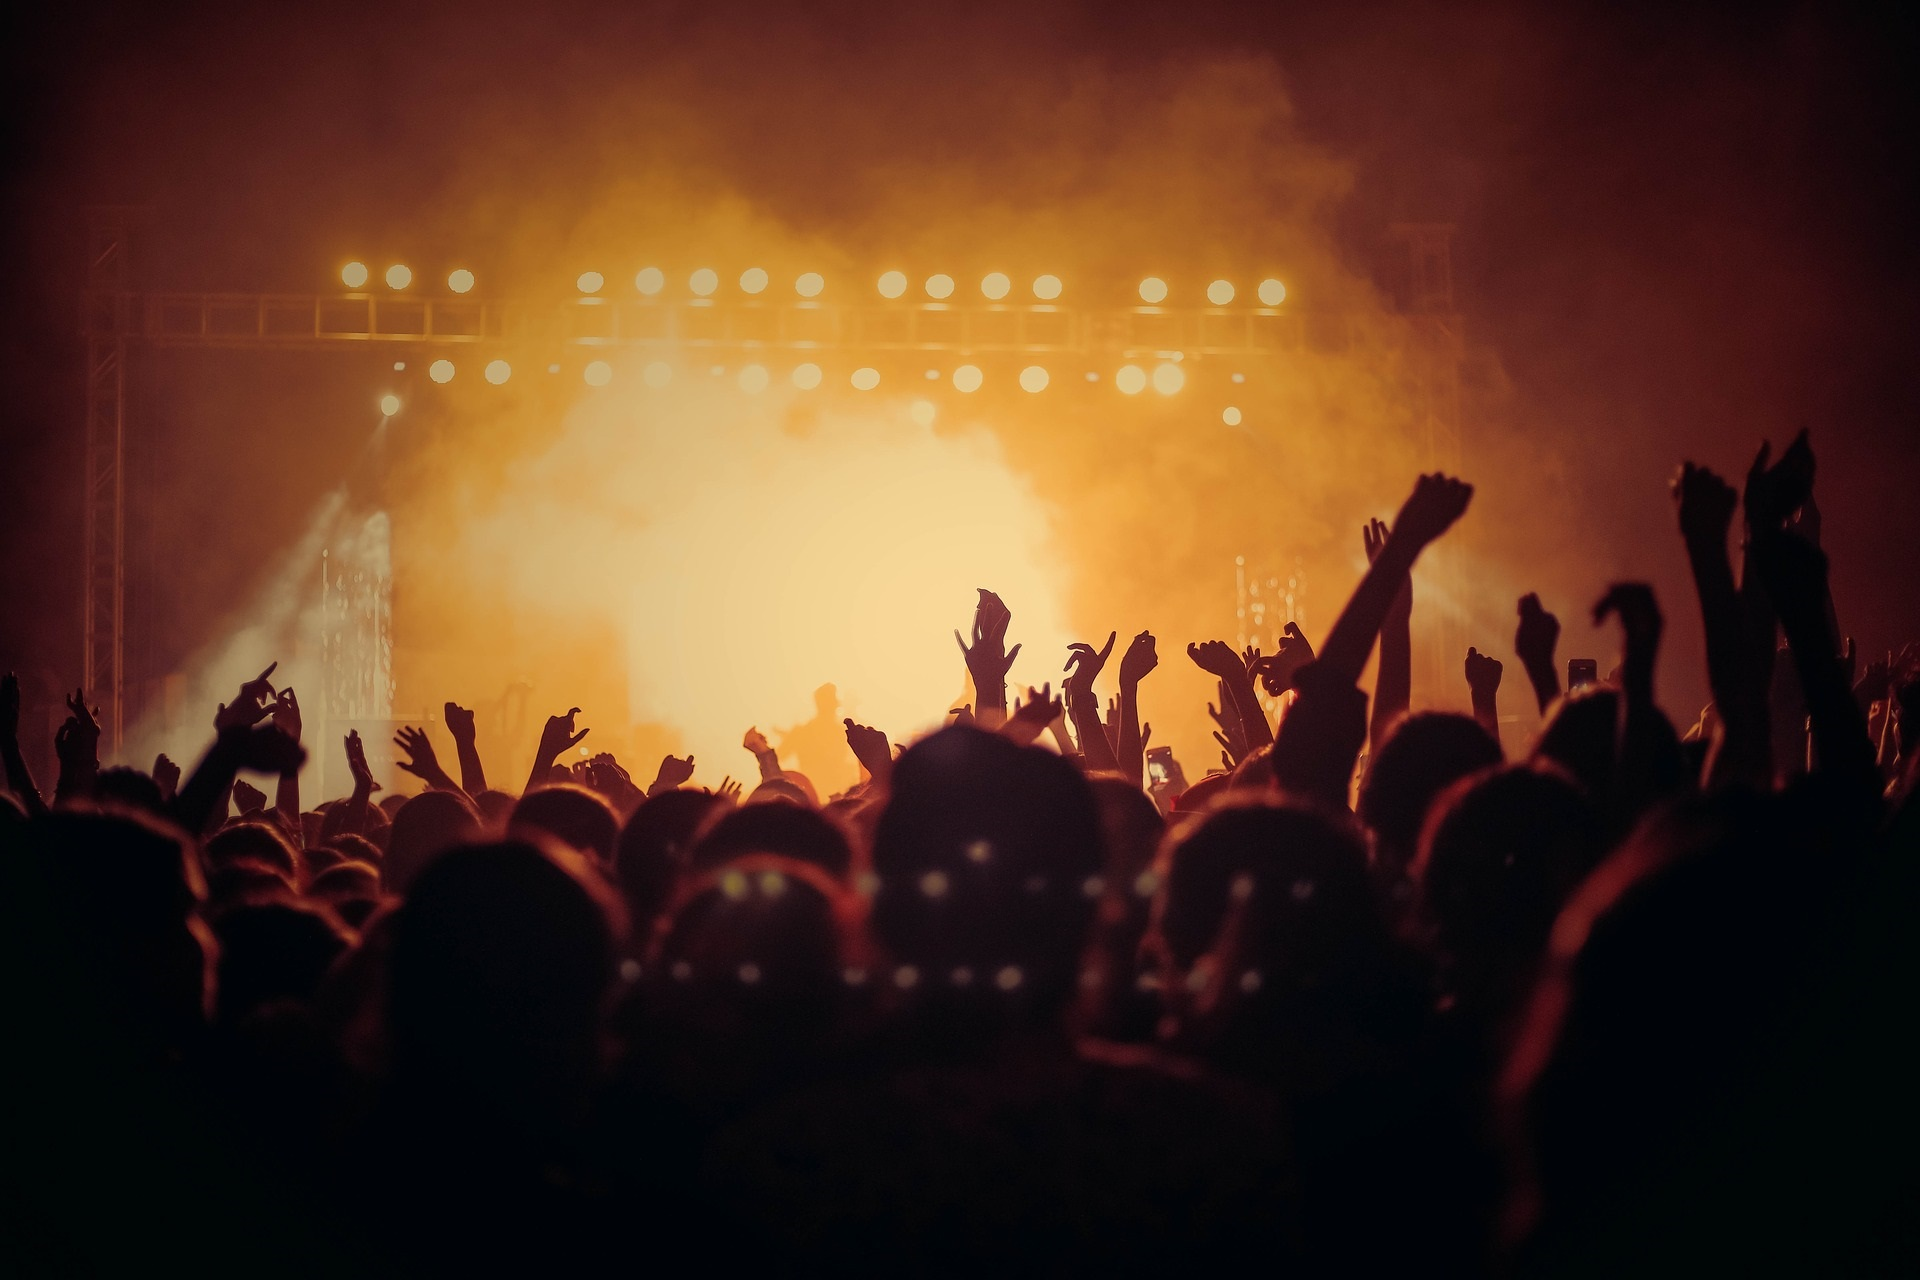 After a Concert Injury, Can You Sue? | New Jersey Personal Injury